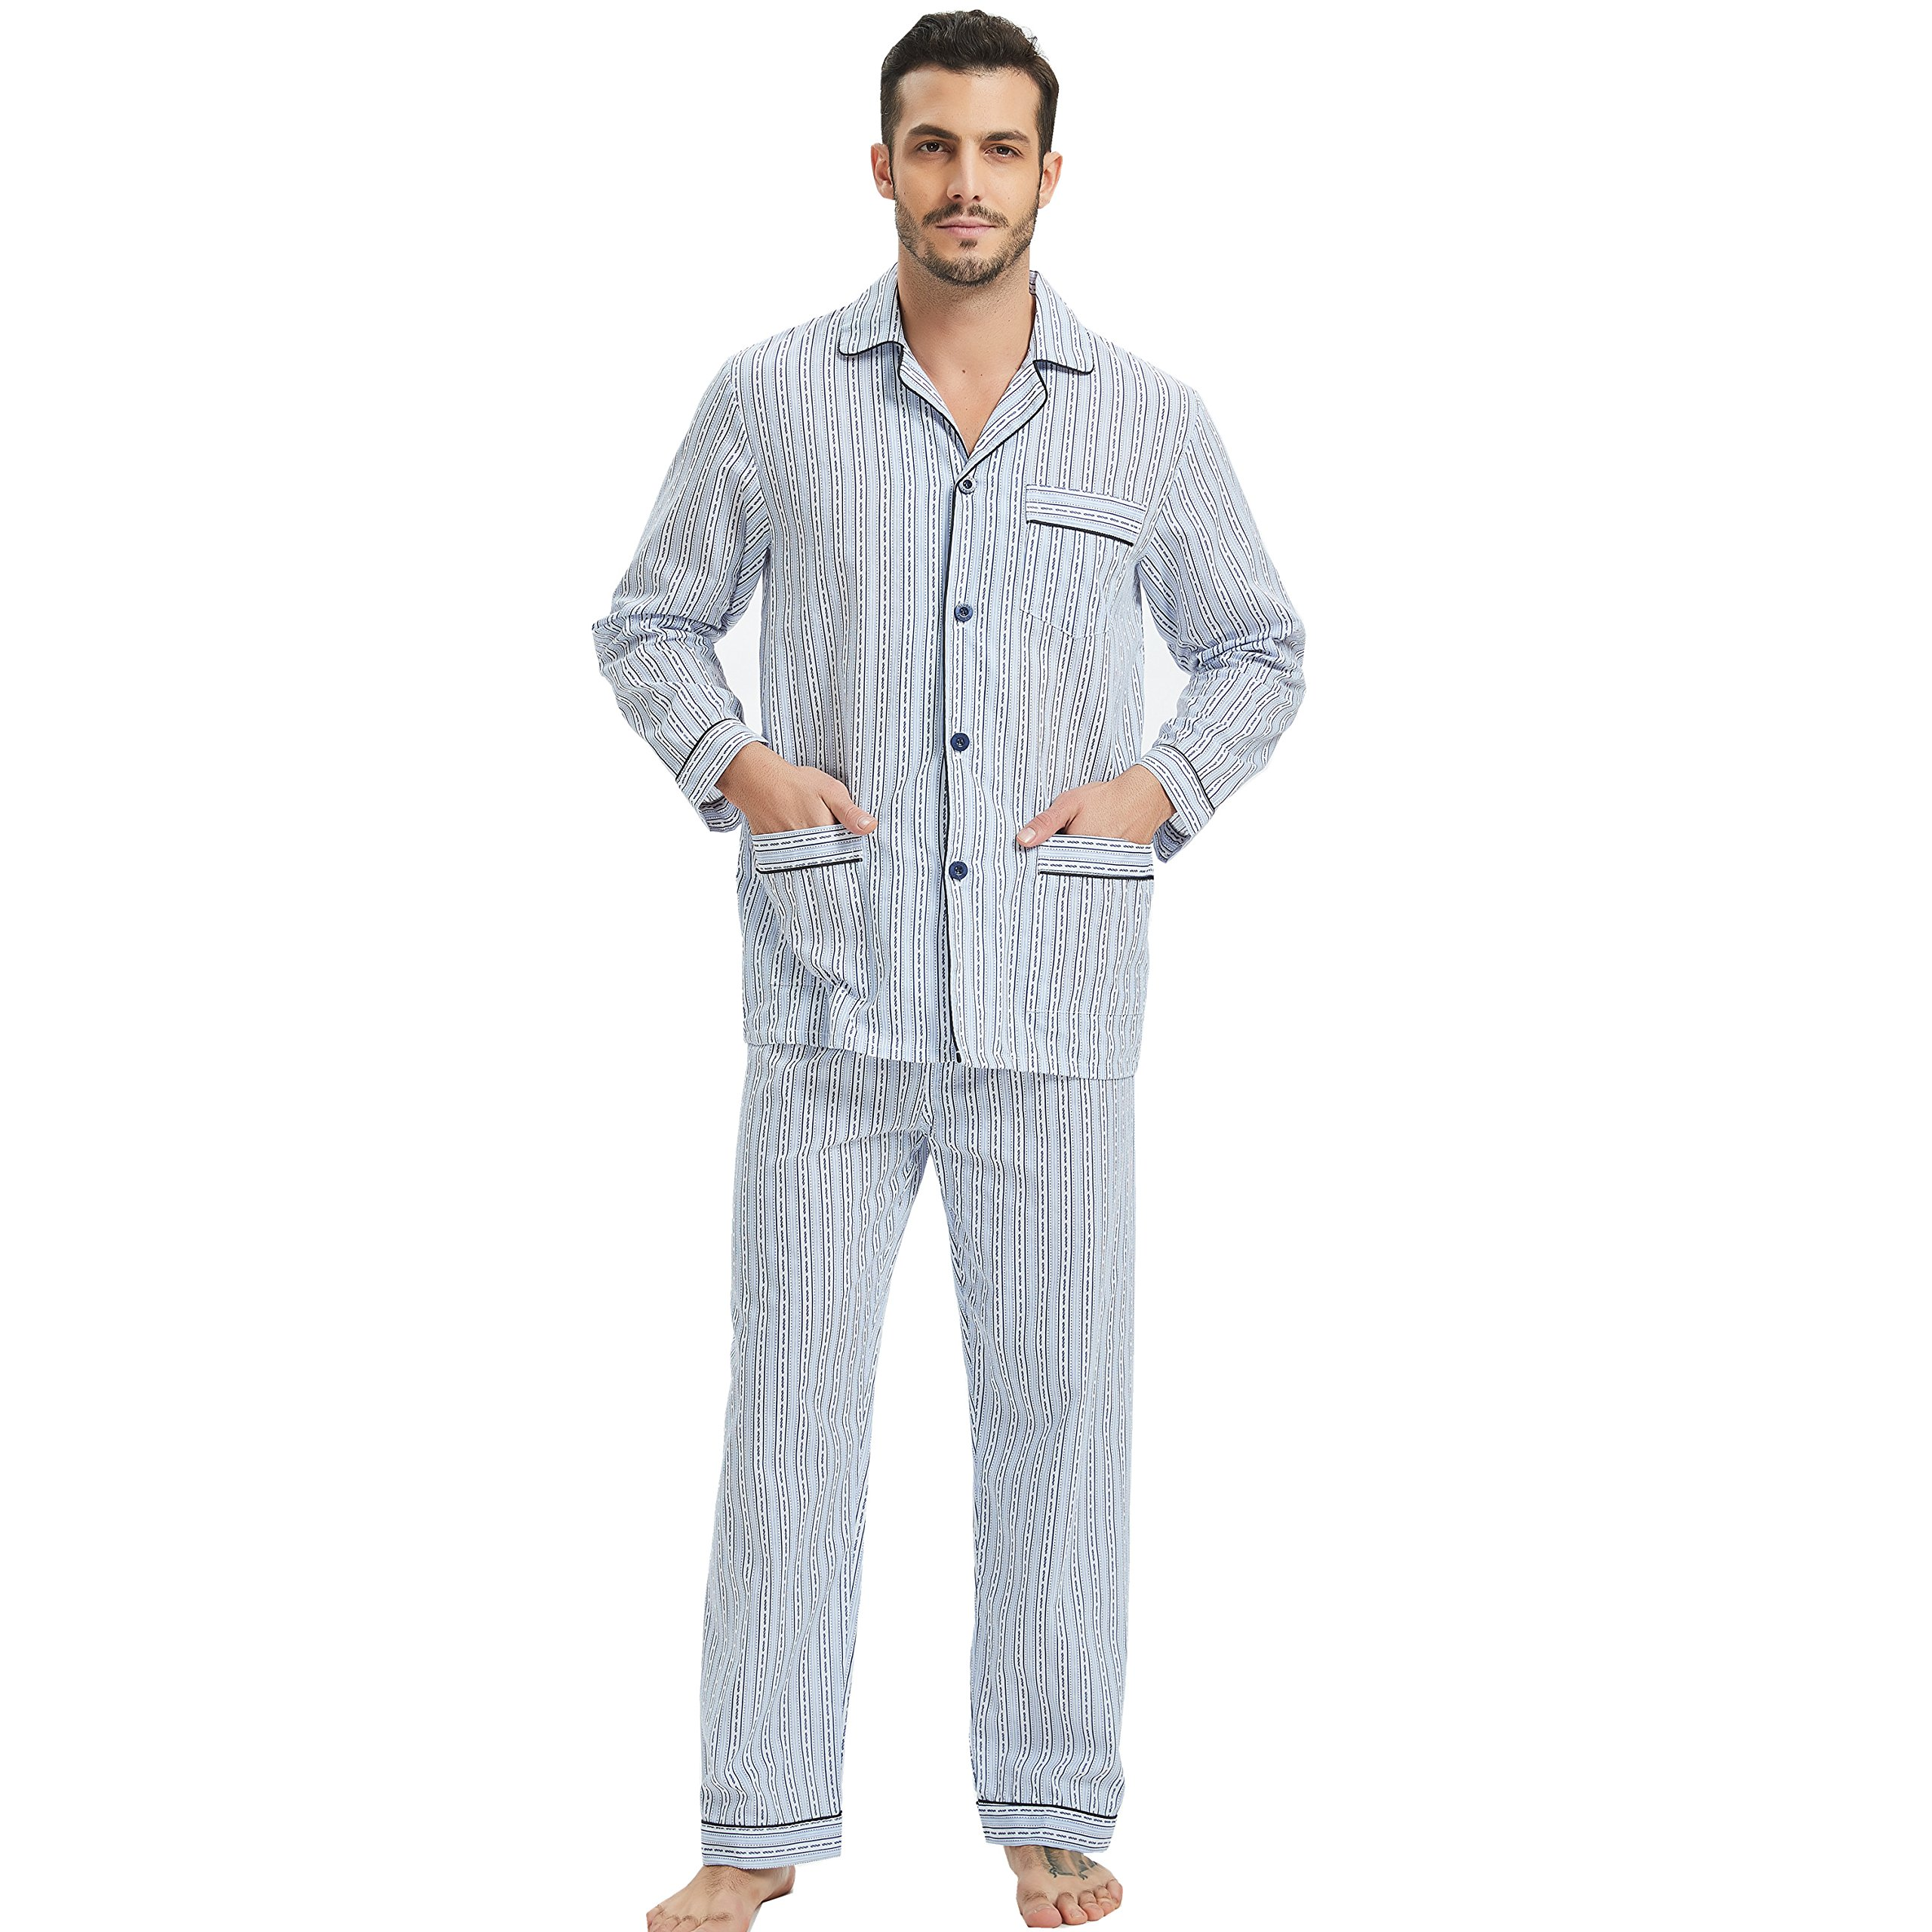 GLOBAL Mens Pajamas Set, 100% Cotton Woven Drawstring Sleepwear Set with Top and Pants/Bottoms by GLOBAL